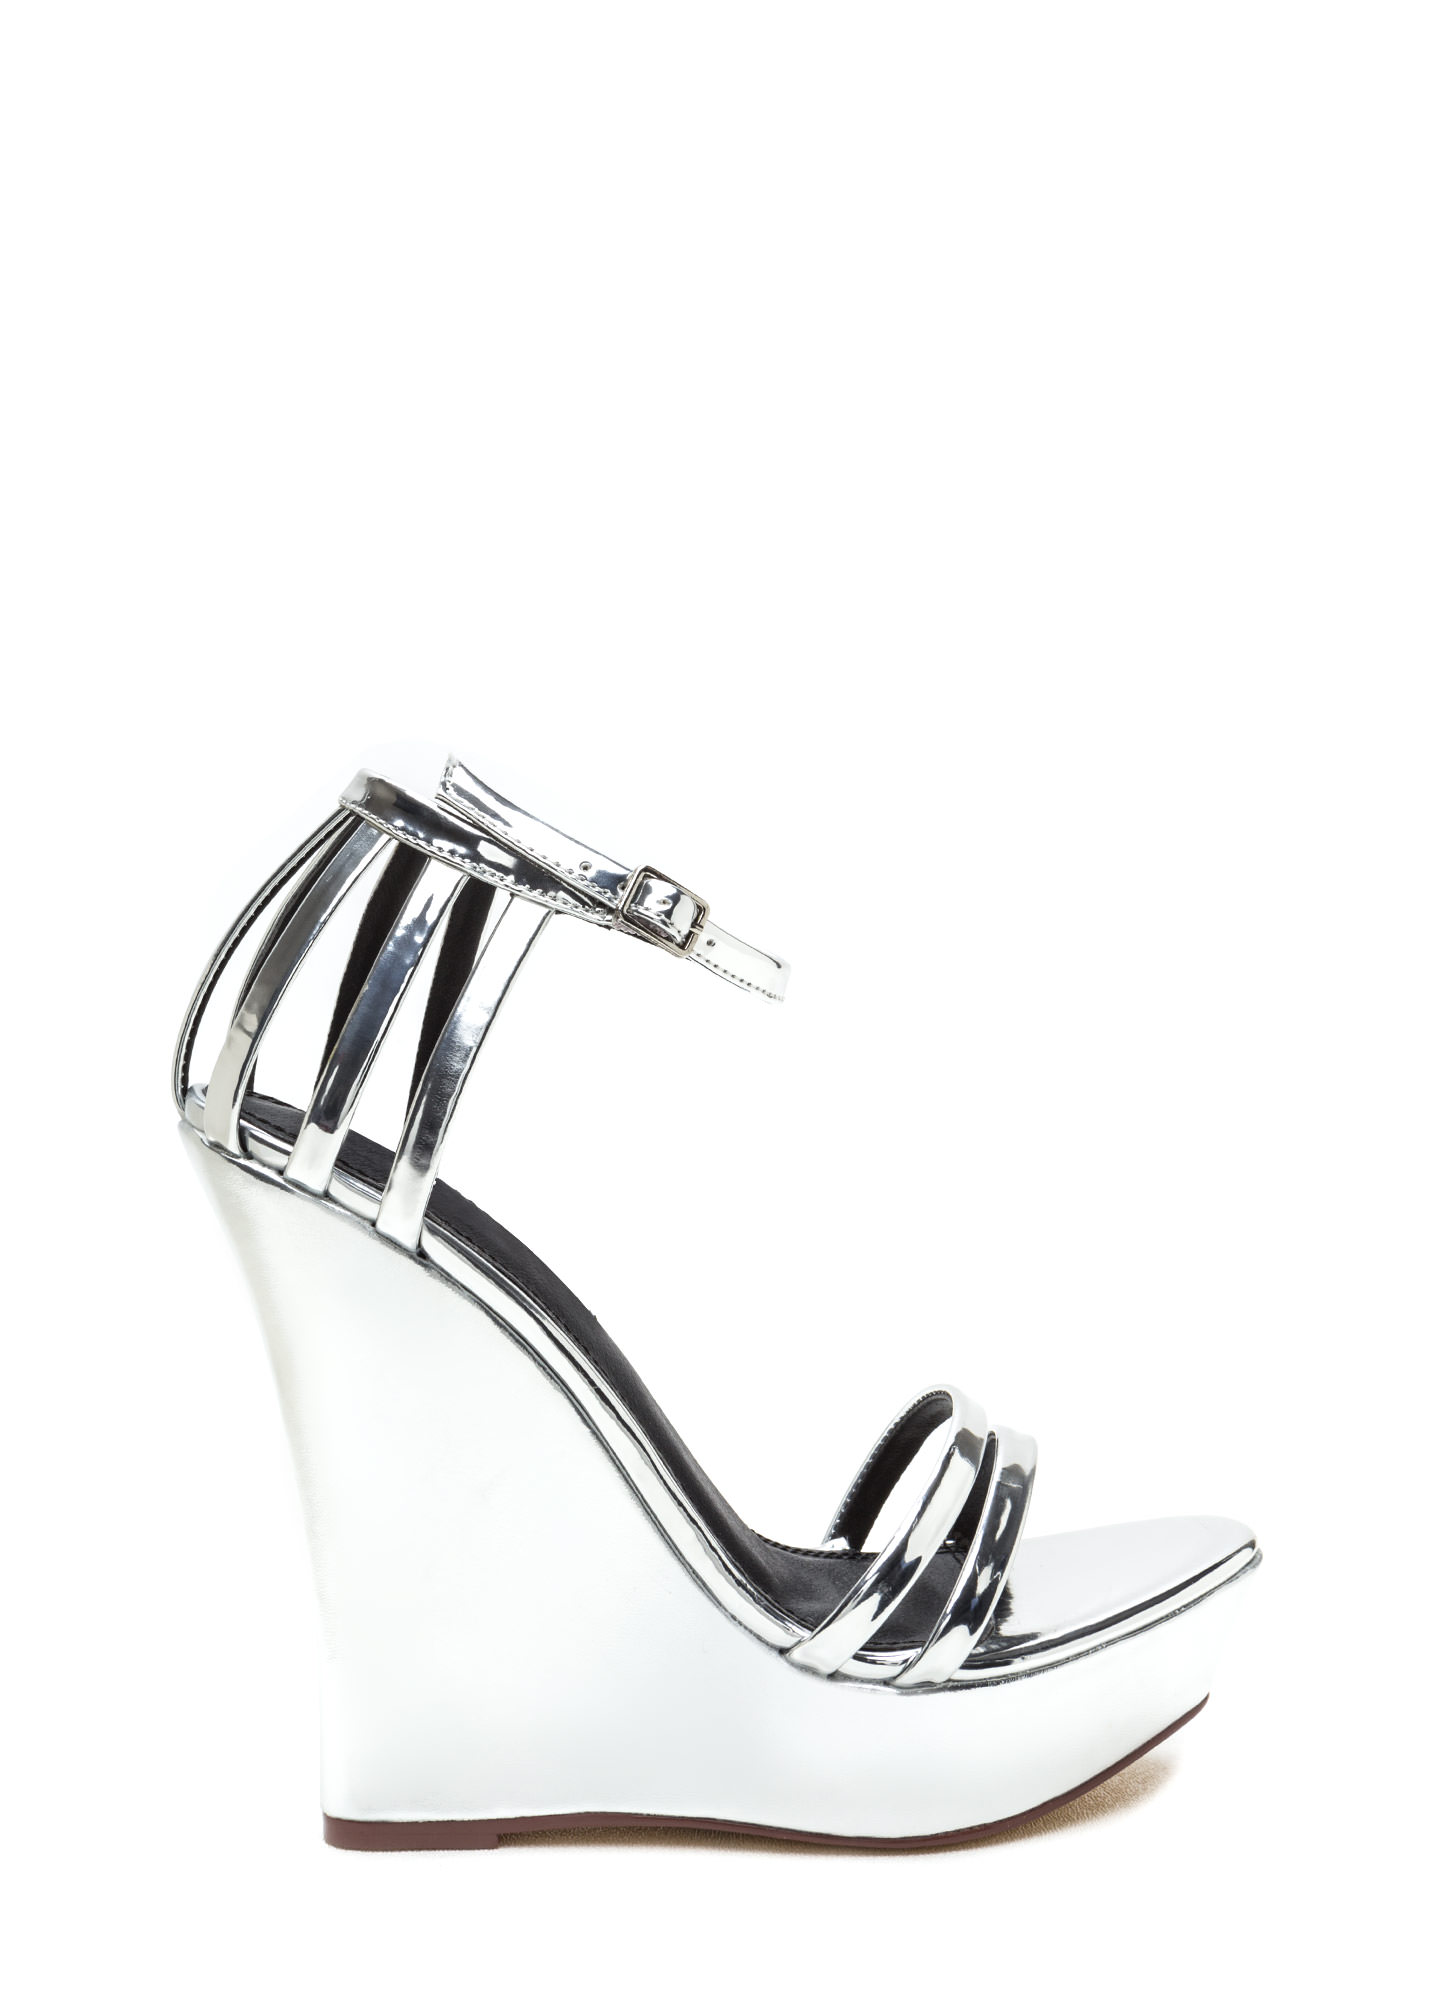 Sky's The Limit Strappy Metallic Wedges SILVER